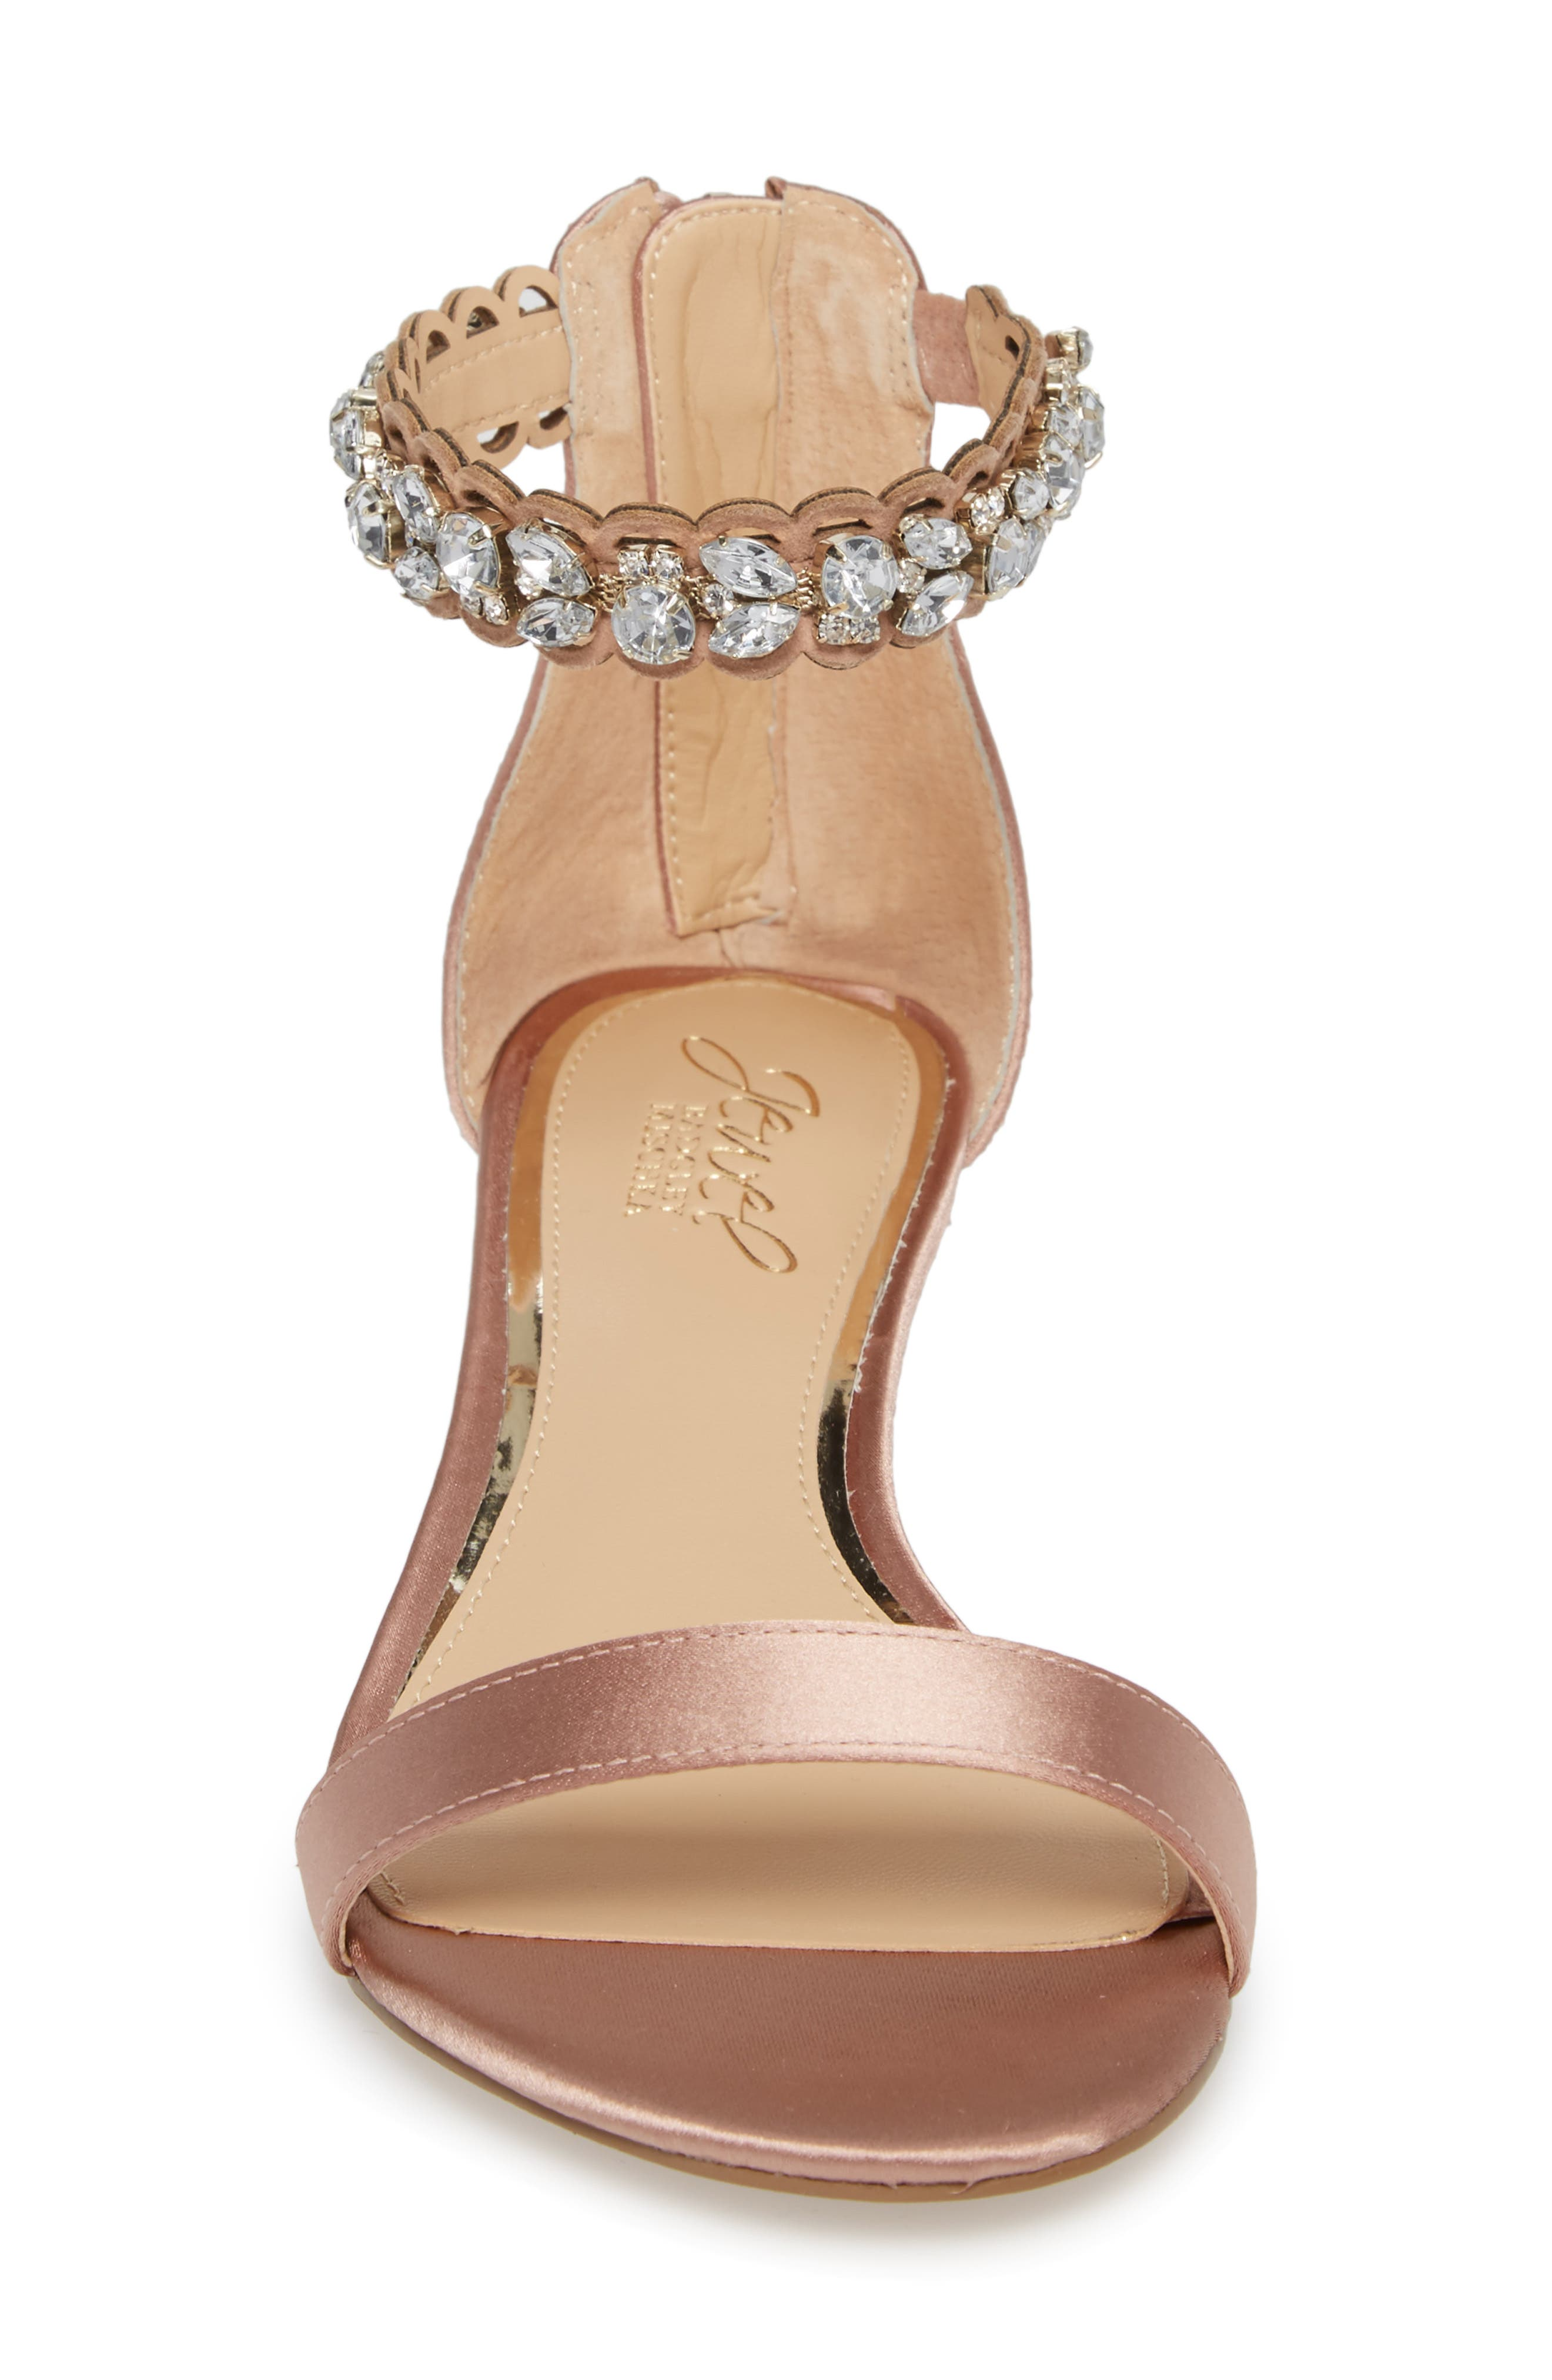 Ginger Wedge Sandal,                             Alternate thumbnail 4, color,                             Dark Blush